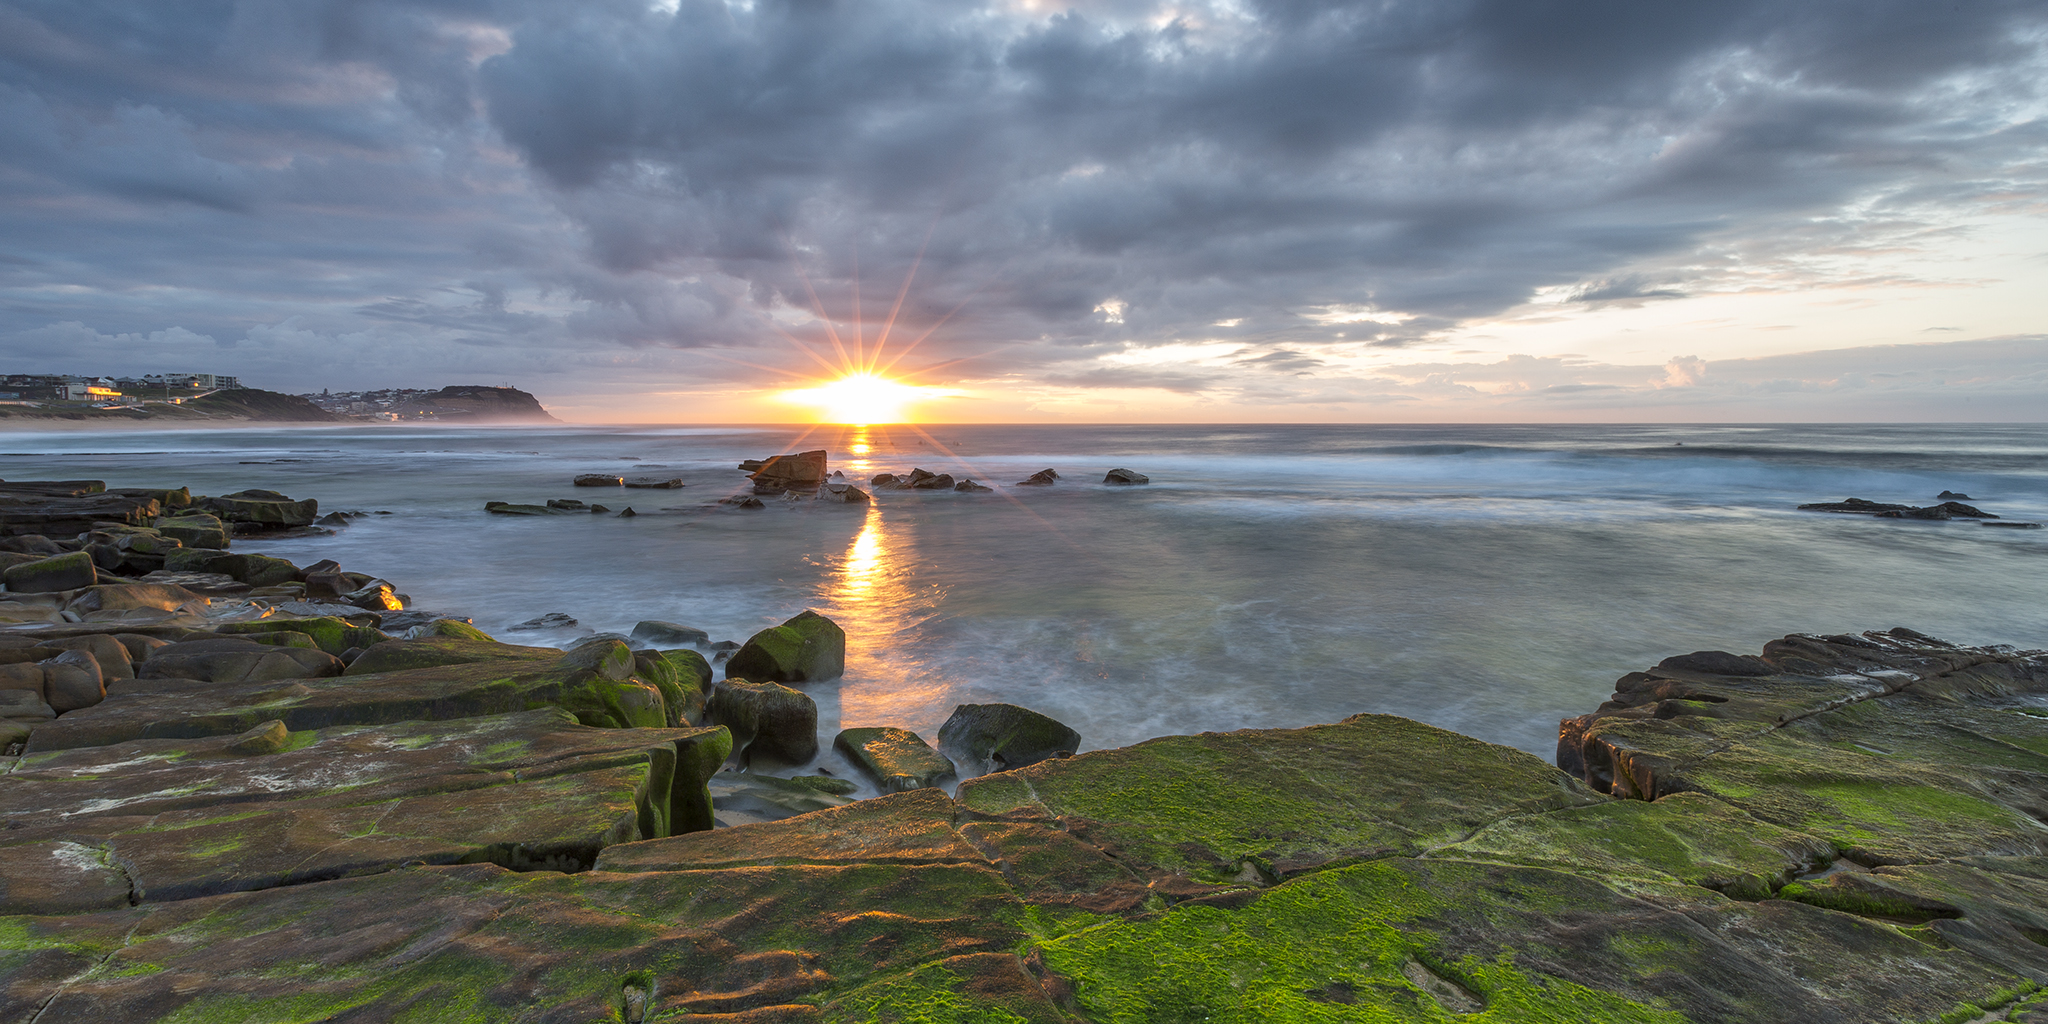 Sunrise over Merewether, Newcastle, NSW